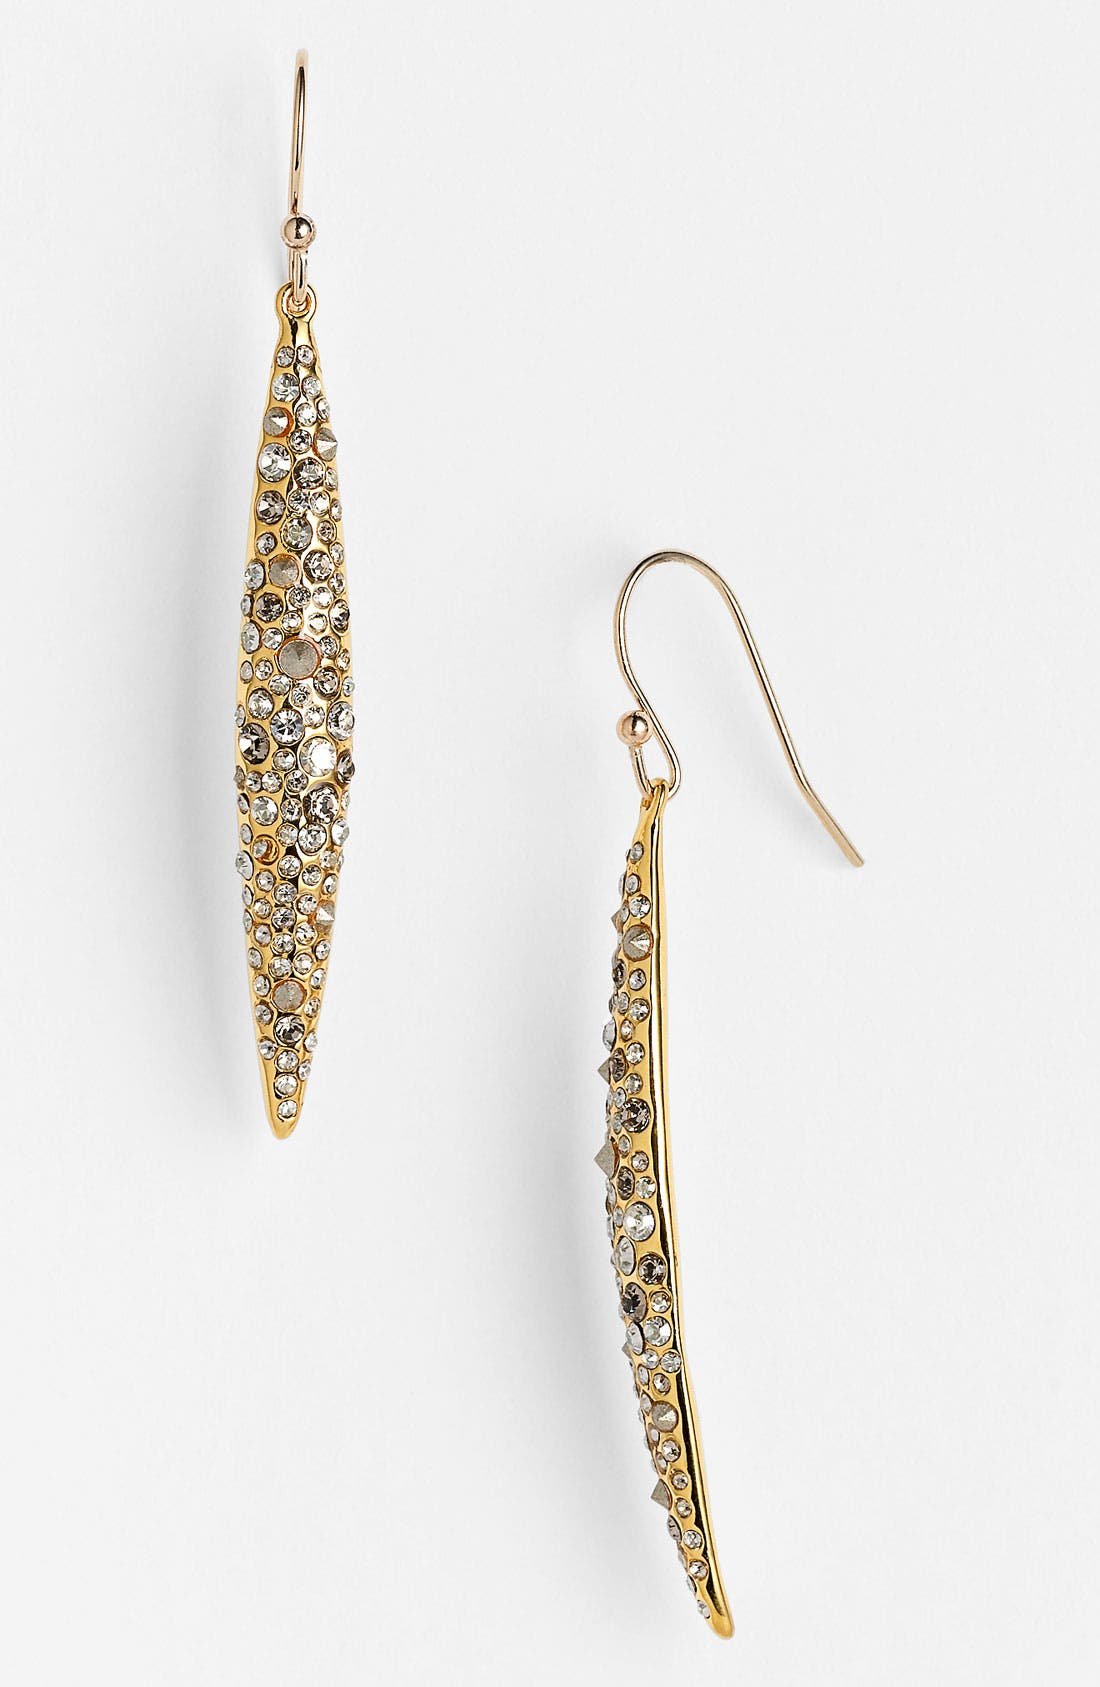 Alternate Image 1 Selected - Alexis Bittar 'Miss Havisham' Crystal Encrusted Spear Earrings